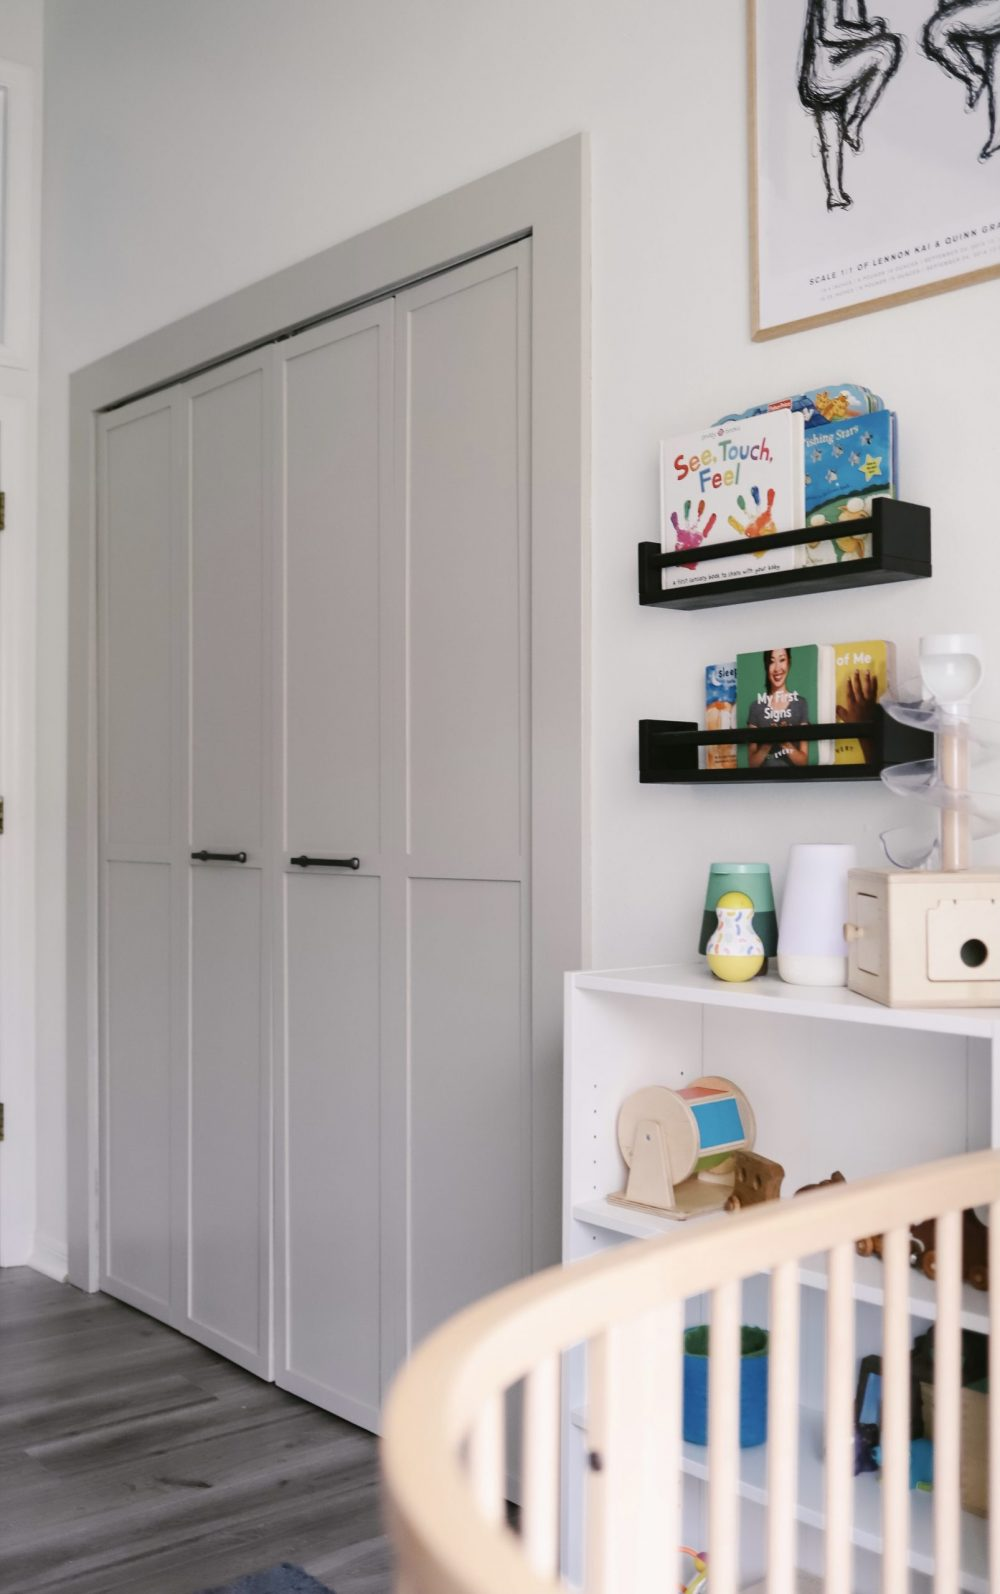 Home Refresh Ideas: DIY Closet Door Upgrade Tutorial. How to update Bi-fold closet doors on a budget. Easy how-to for updating old bifold closet doors and save money (save the hundreds it would cost to replace them!). |DIY Closet Door by popular Florida lifestyle blog, Fresh Mommy Blog: before image of a updated bifold closet door.